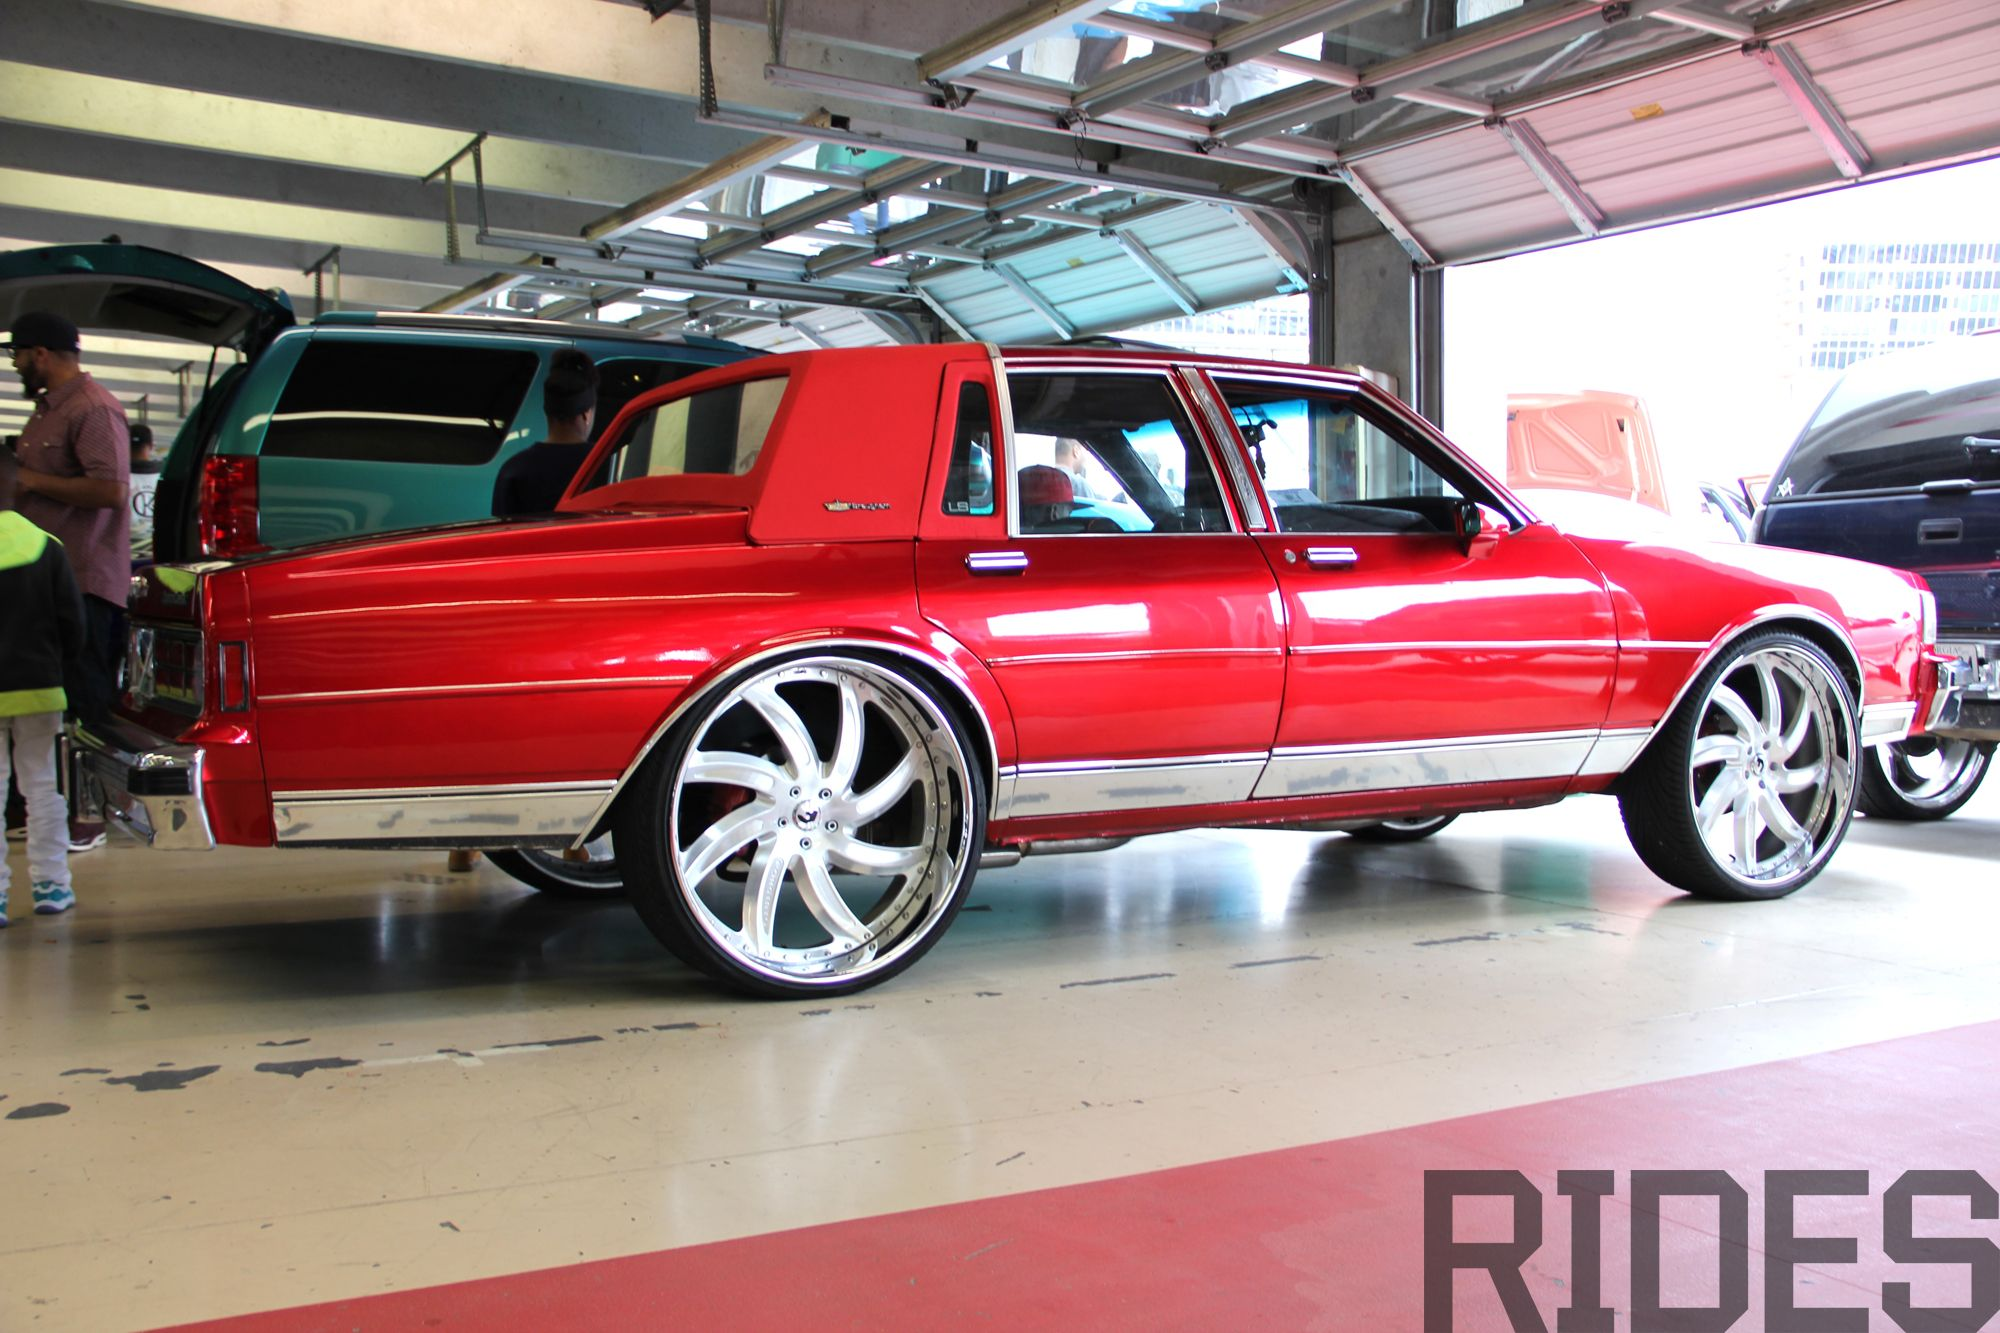 Pimped Out Old School Cars Pimped Out Dirty South Rides With Big